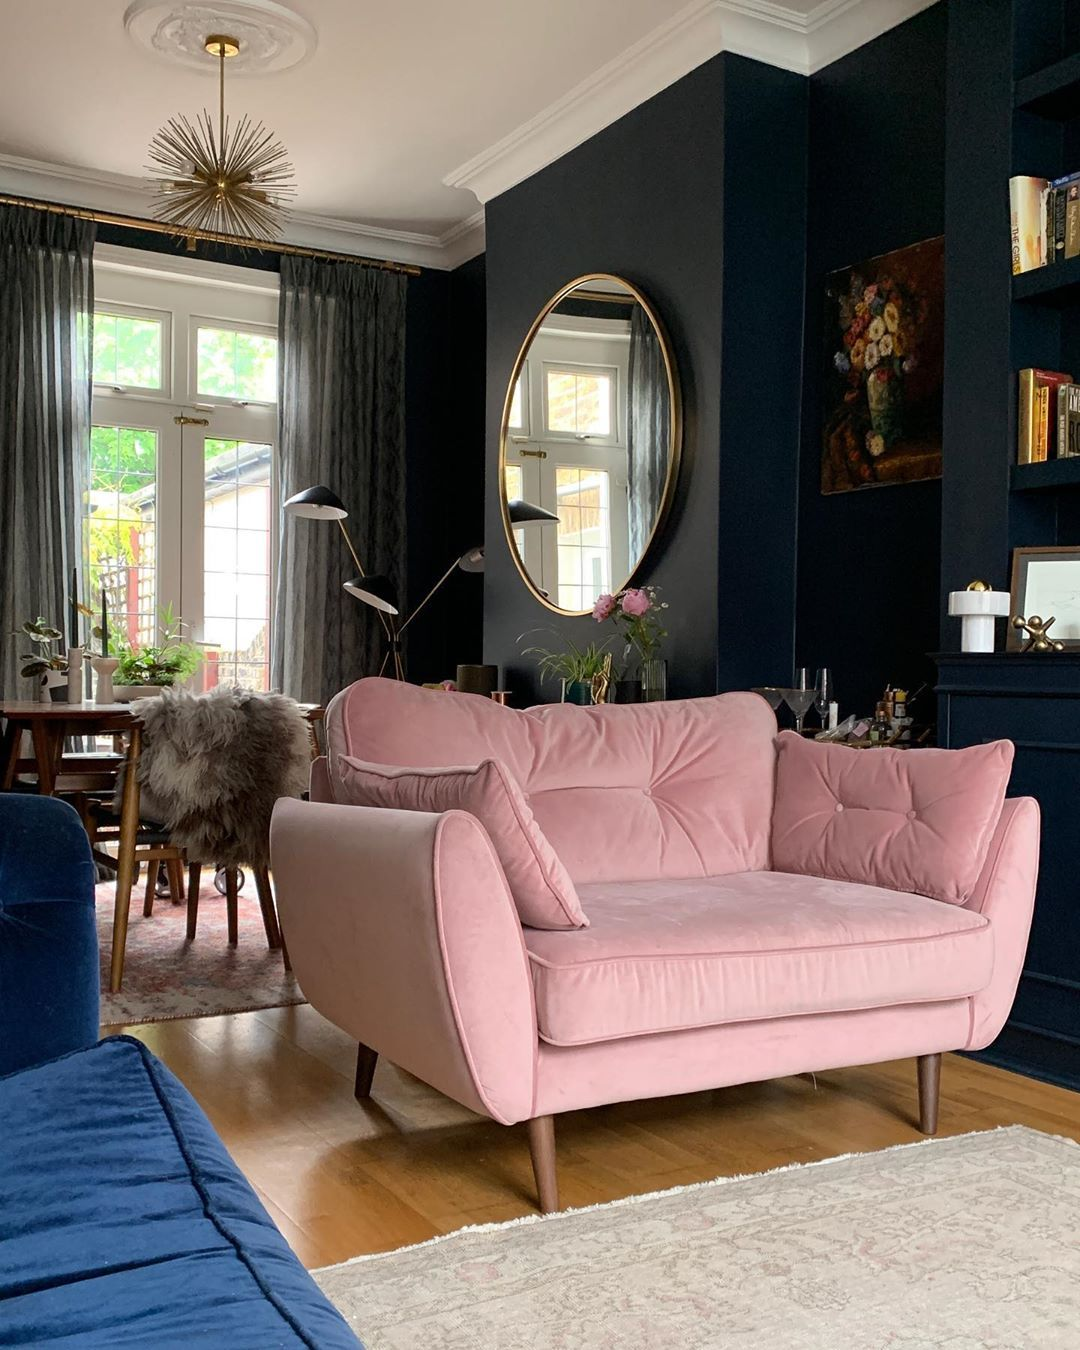 Snapped From My Sofa While The Rain Batteries Down Outside Had A Lovely Morning Pu Blue Sofas Living Room Blue Velvet Sofa Living Room Velvet Sofa Living Room